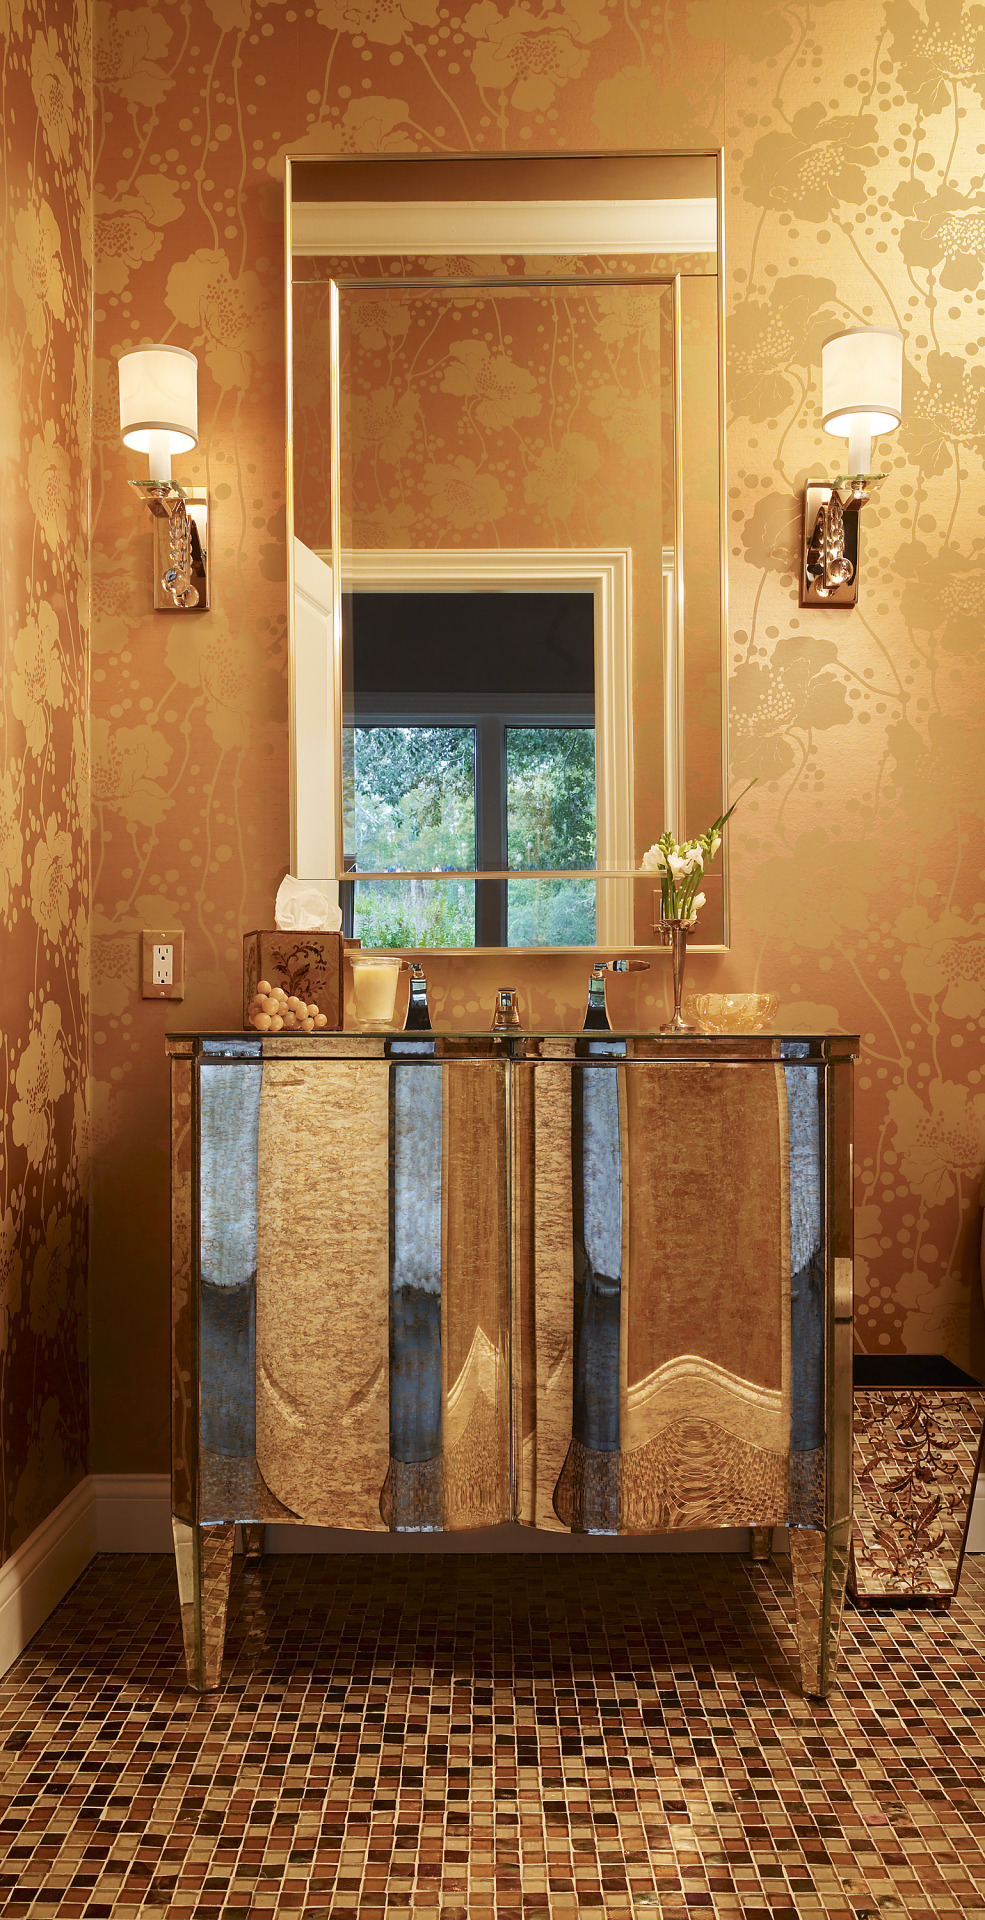 We went for glamour when we designed this powder room with the use of reflective surfaces